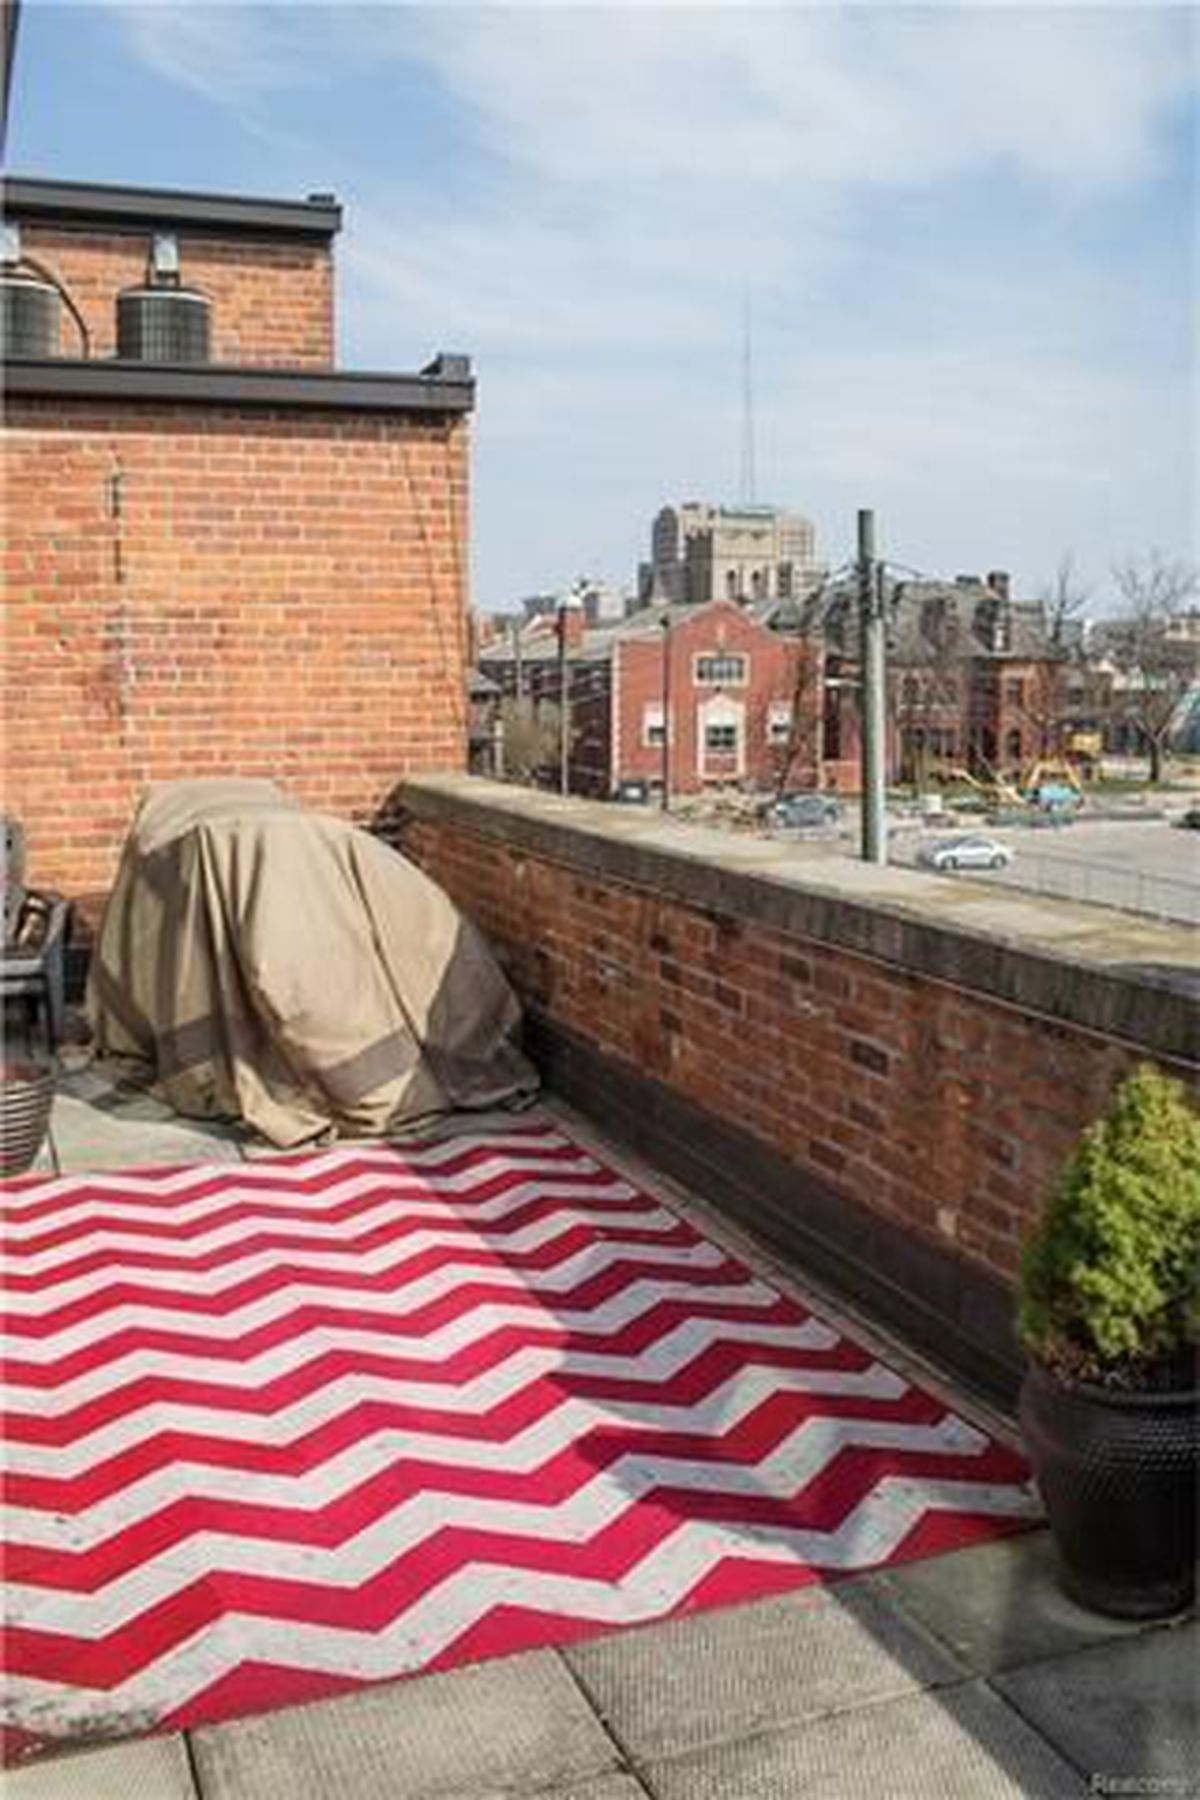 Hamptons Real Estate Showcase: For $329K, A One-bedroom Canfield Loft